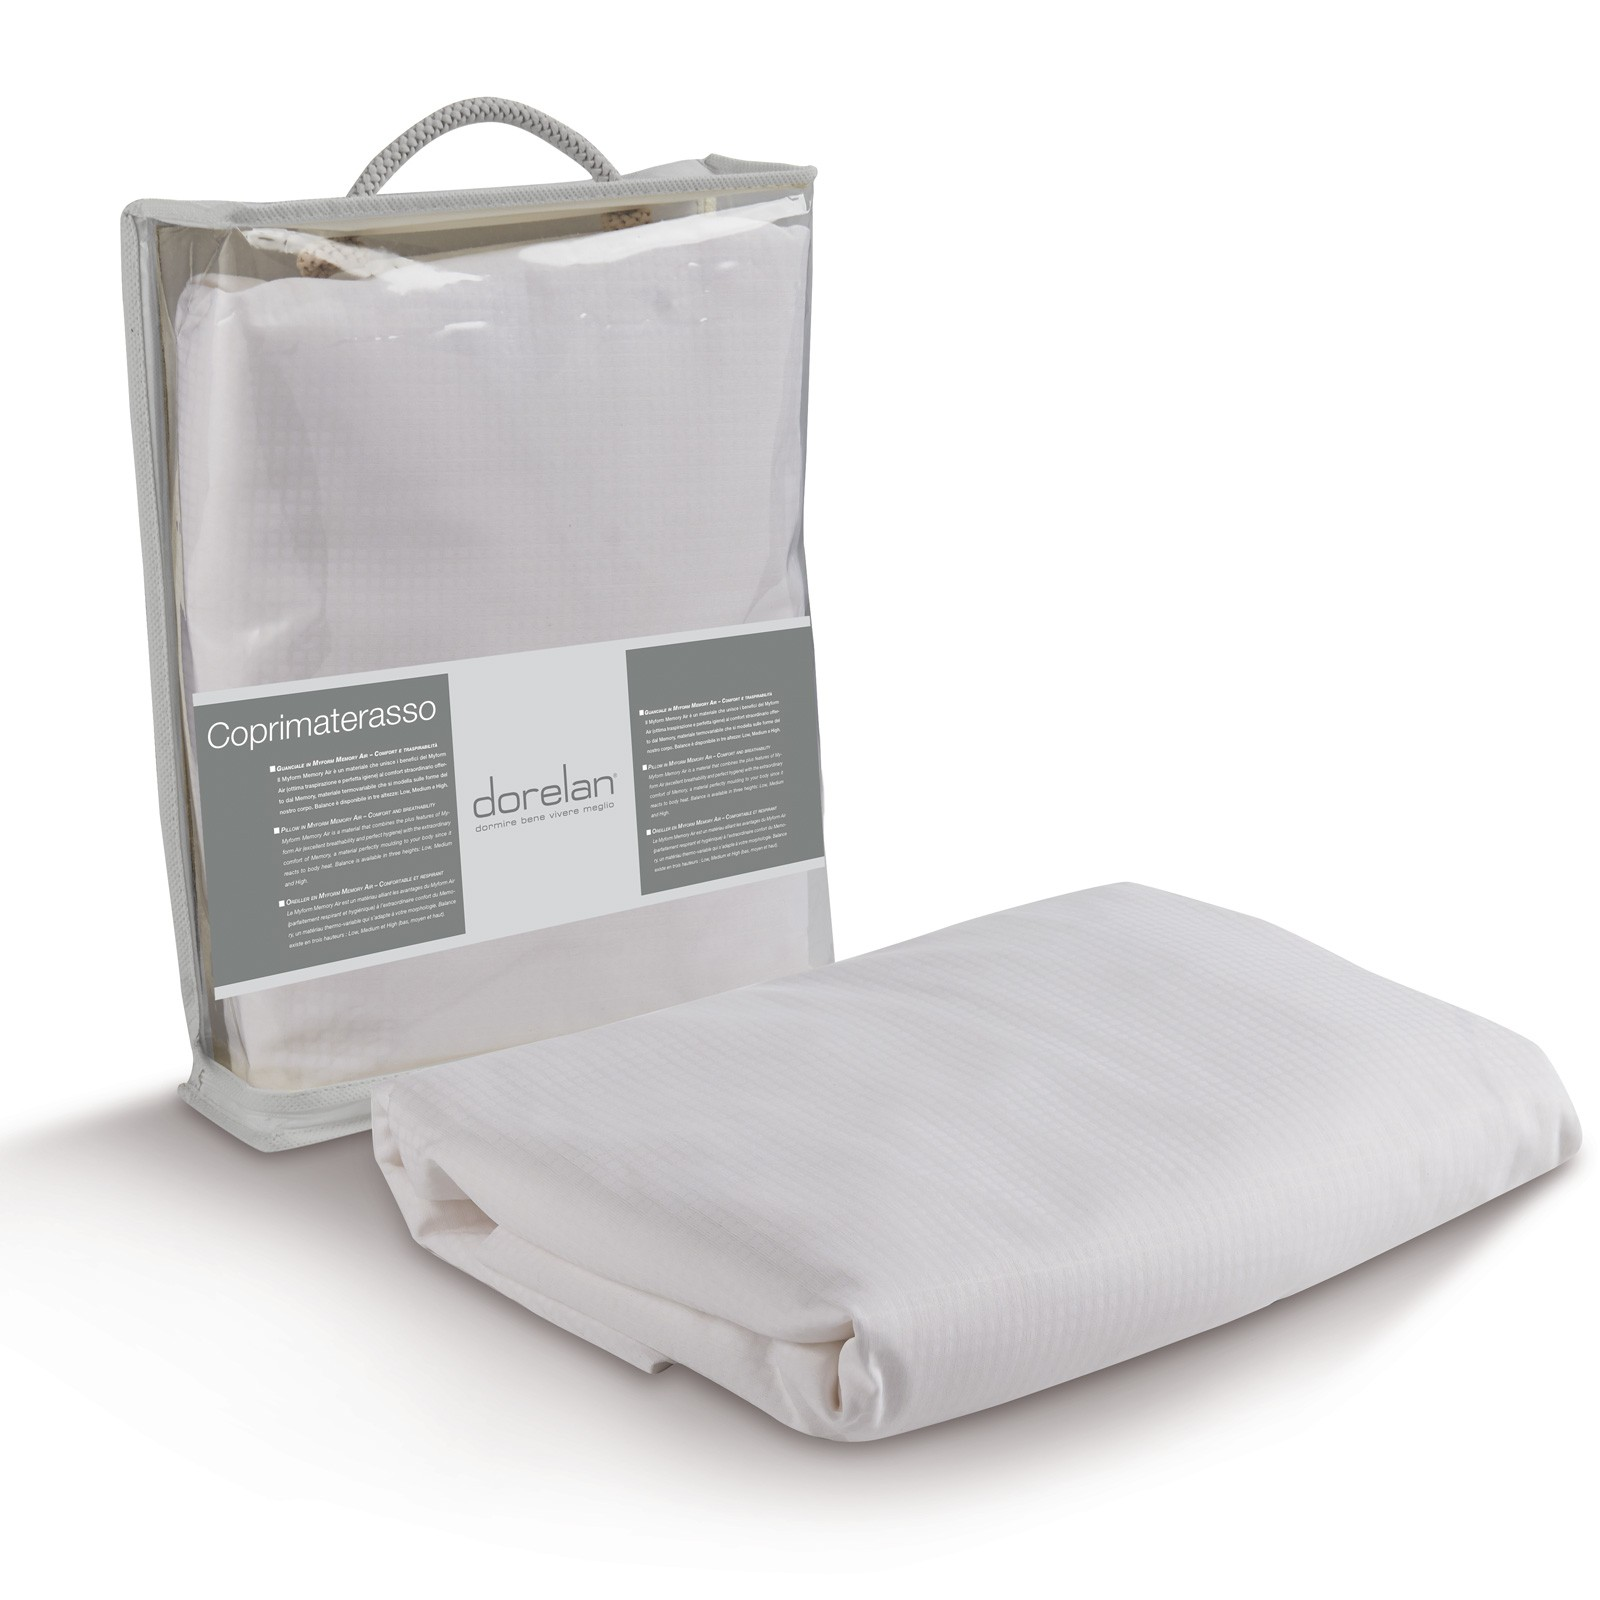 Coprimaterasso Sleep Mattress Cover